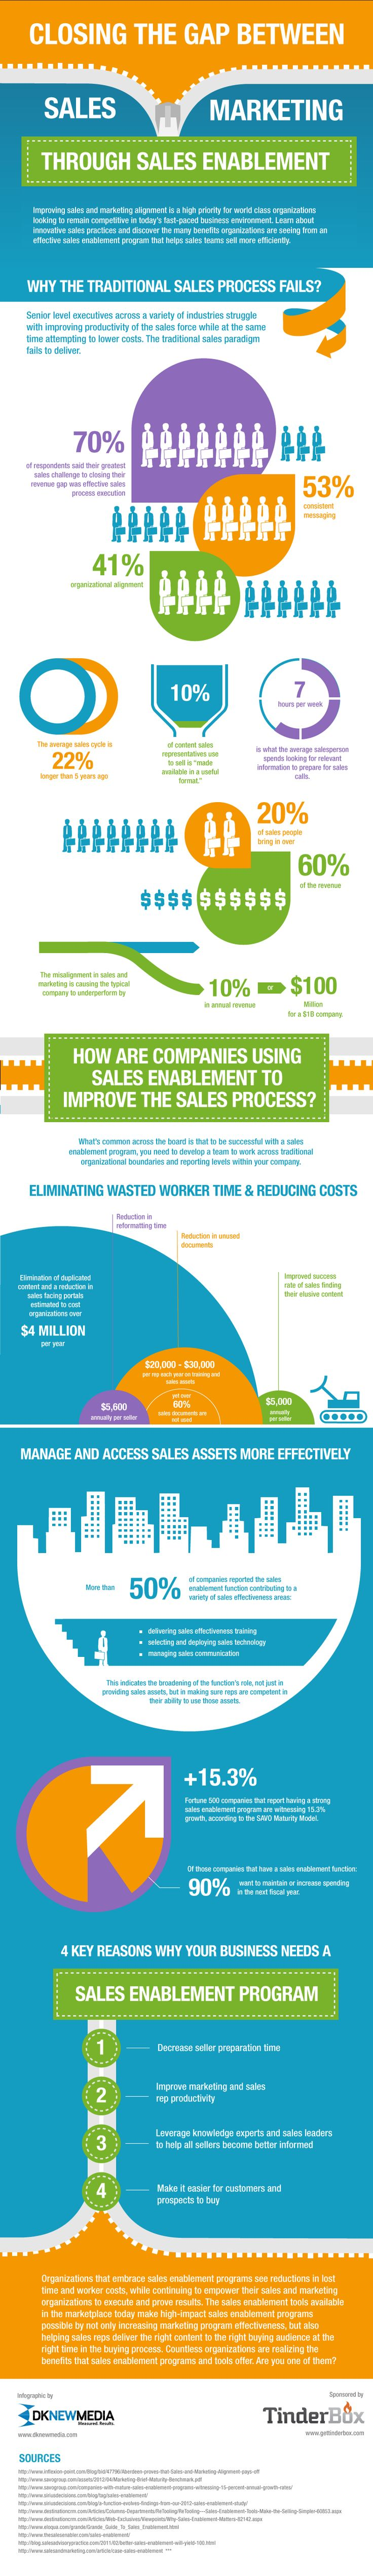 Companies that are utilizing sales enablement tools and programs as a part apart of both the sales and marketing strategy are seeing increased effectiveness